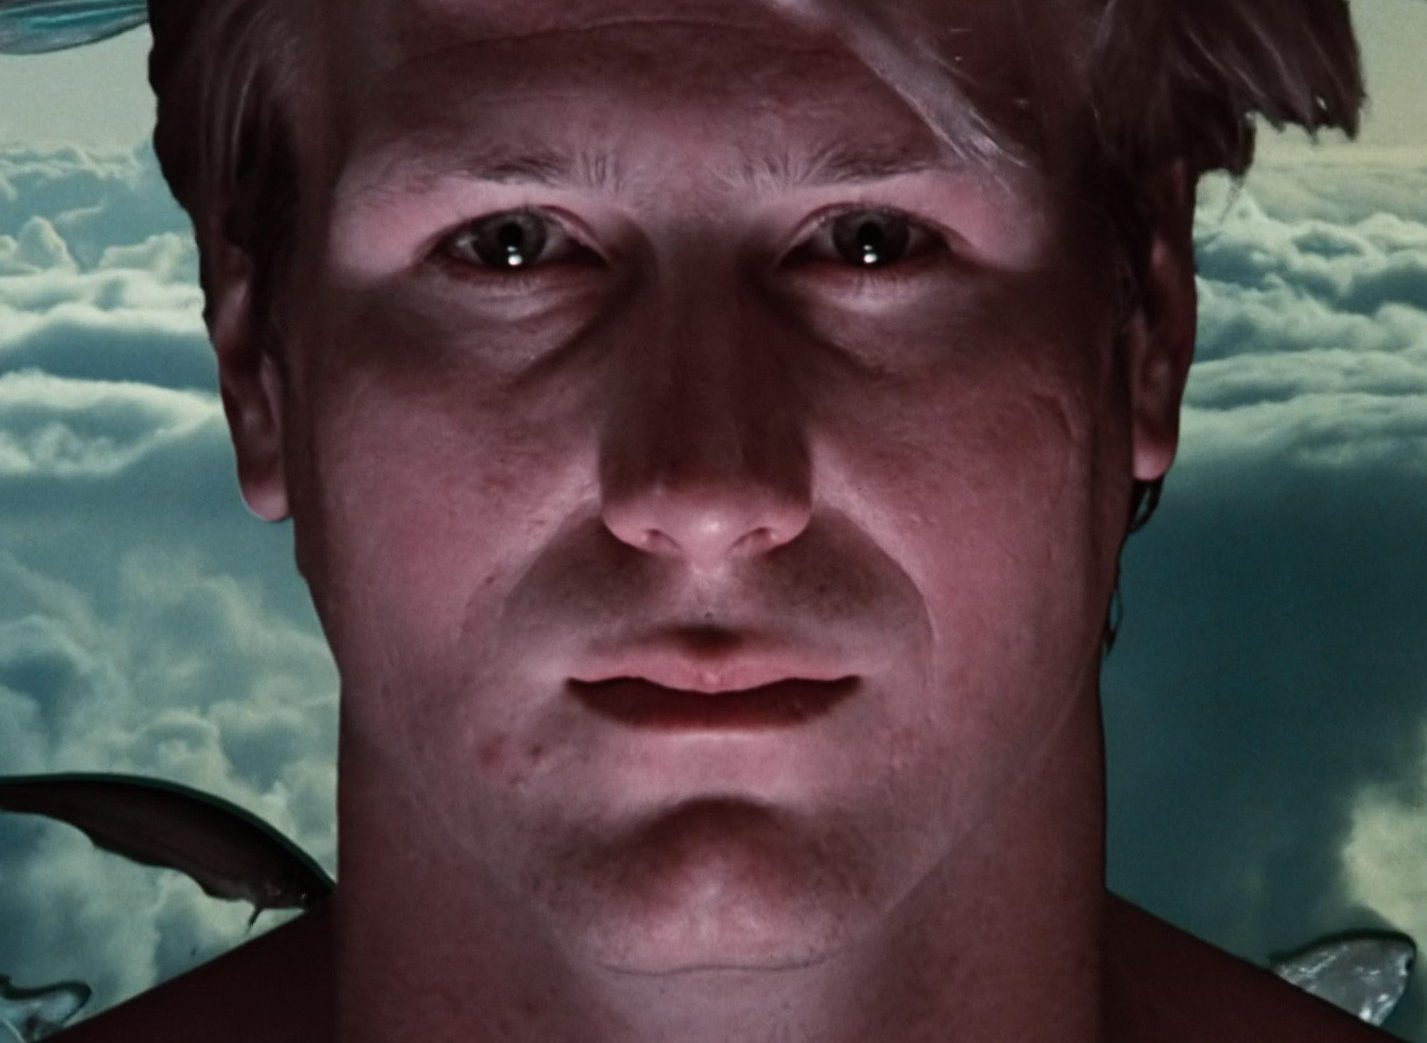 Altered States 020 e1616155264591 10 Things You Probably Didn't Know About William Hurt